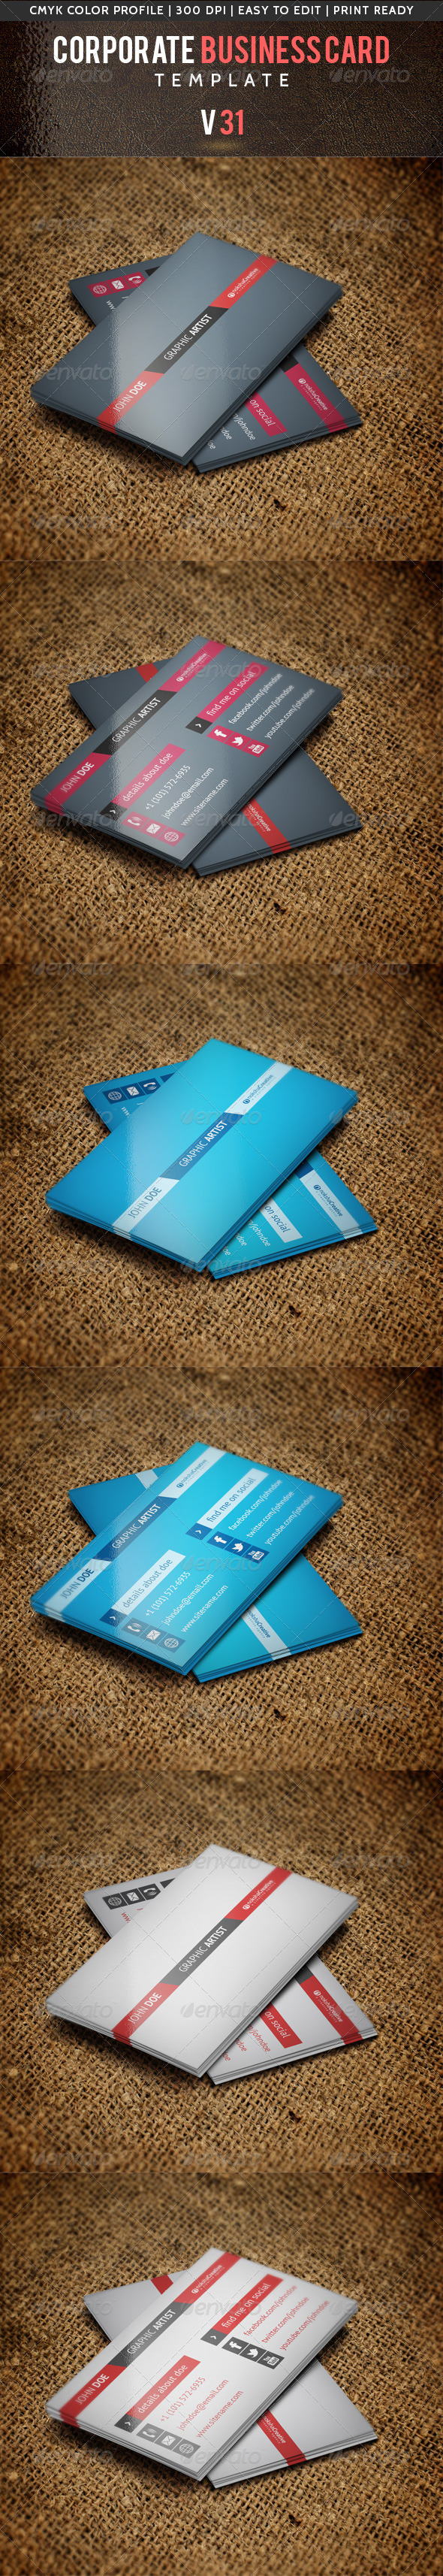 Corporate Business Card V 31